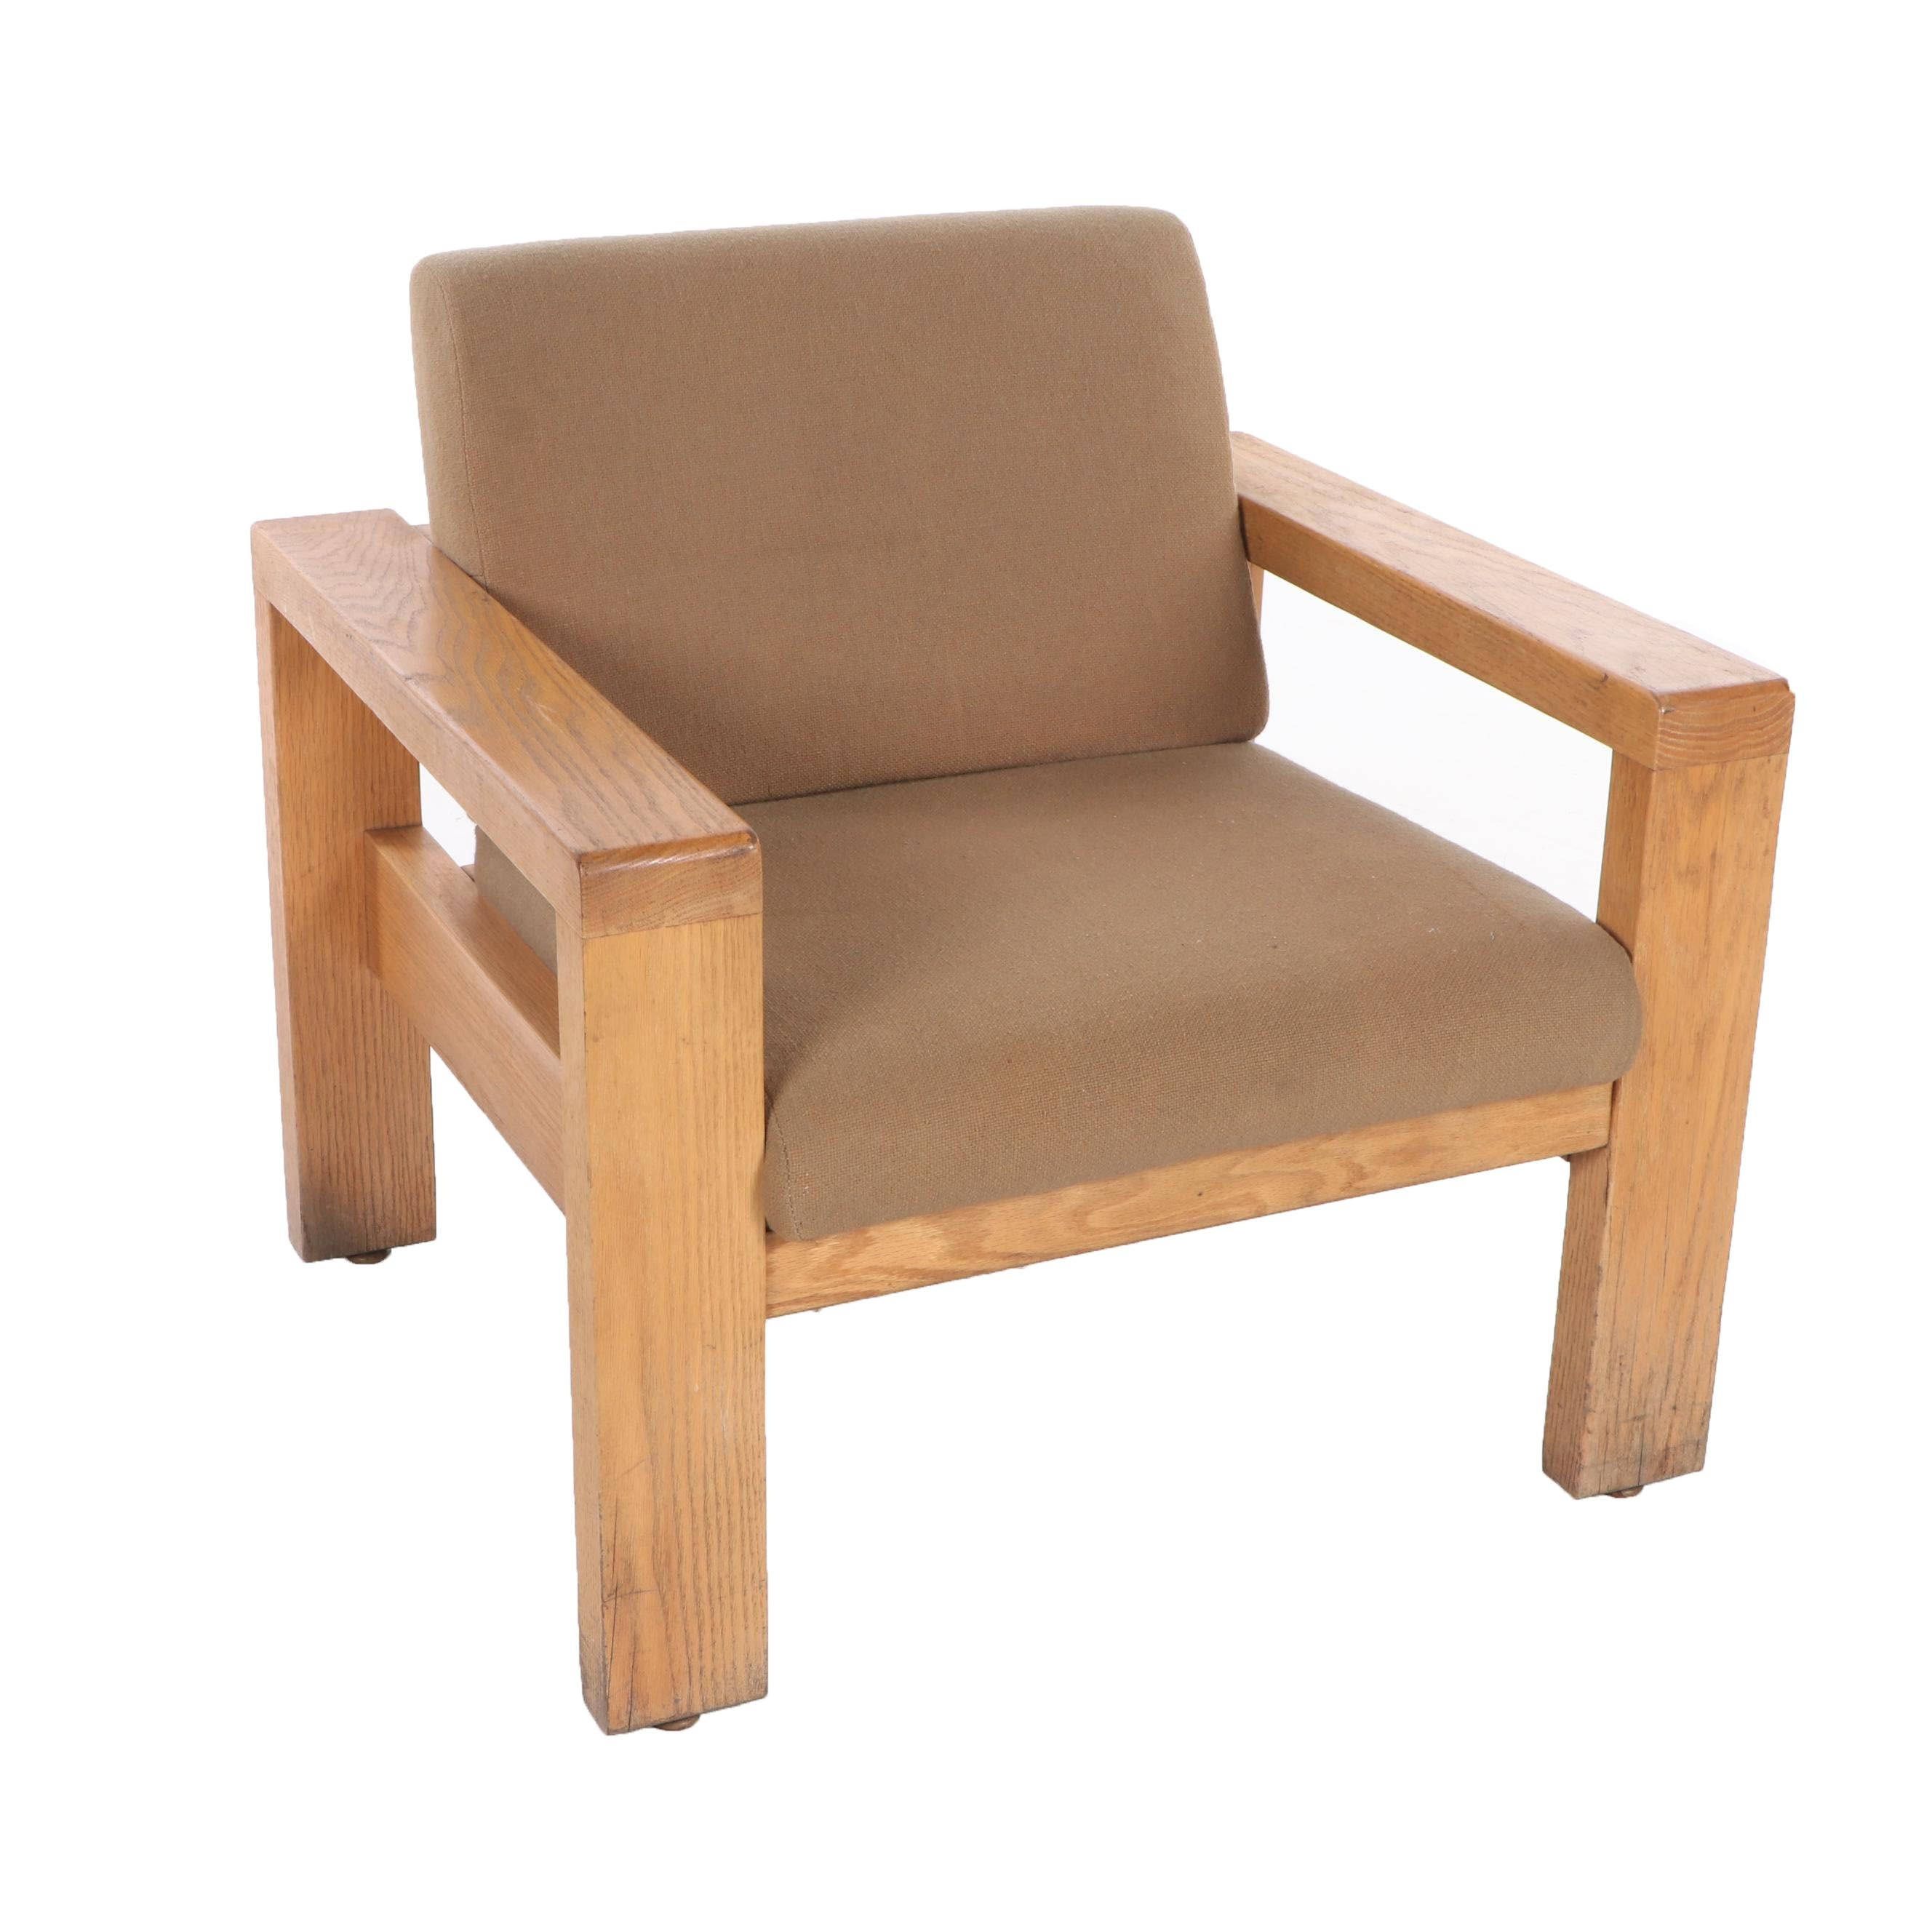 Modern Upholstered Oak Lounge Chair, Late 20th Century